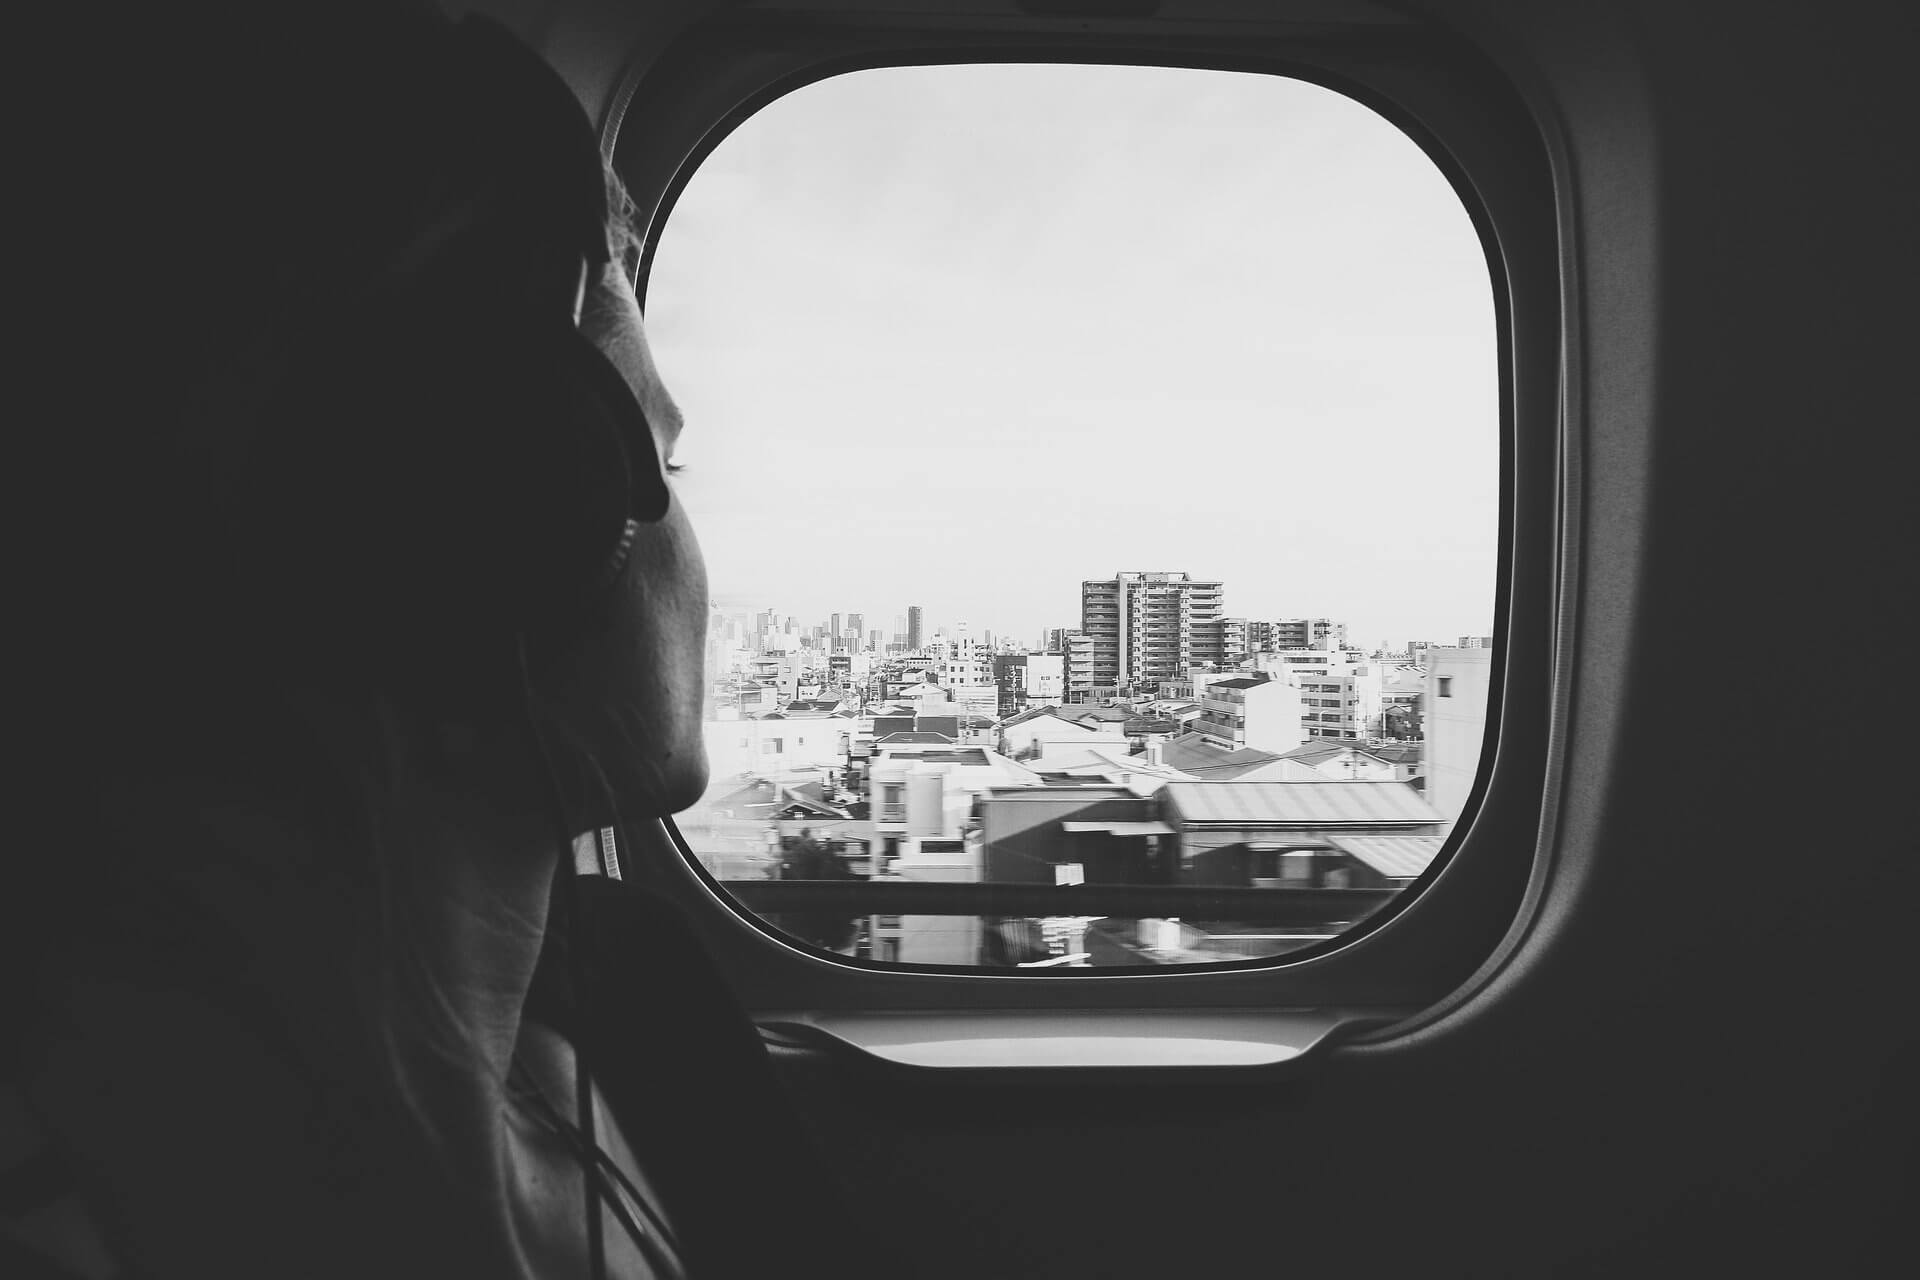 Inspiration by experiencing airplane - Motivation N You- Blogs 2017